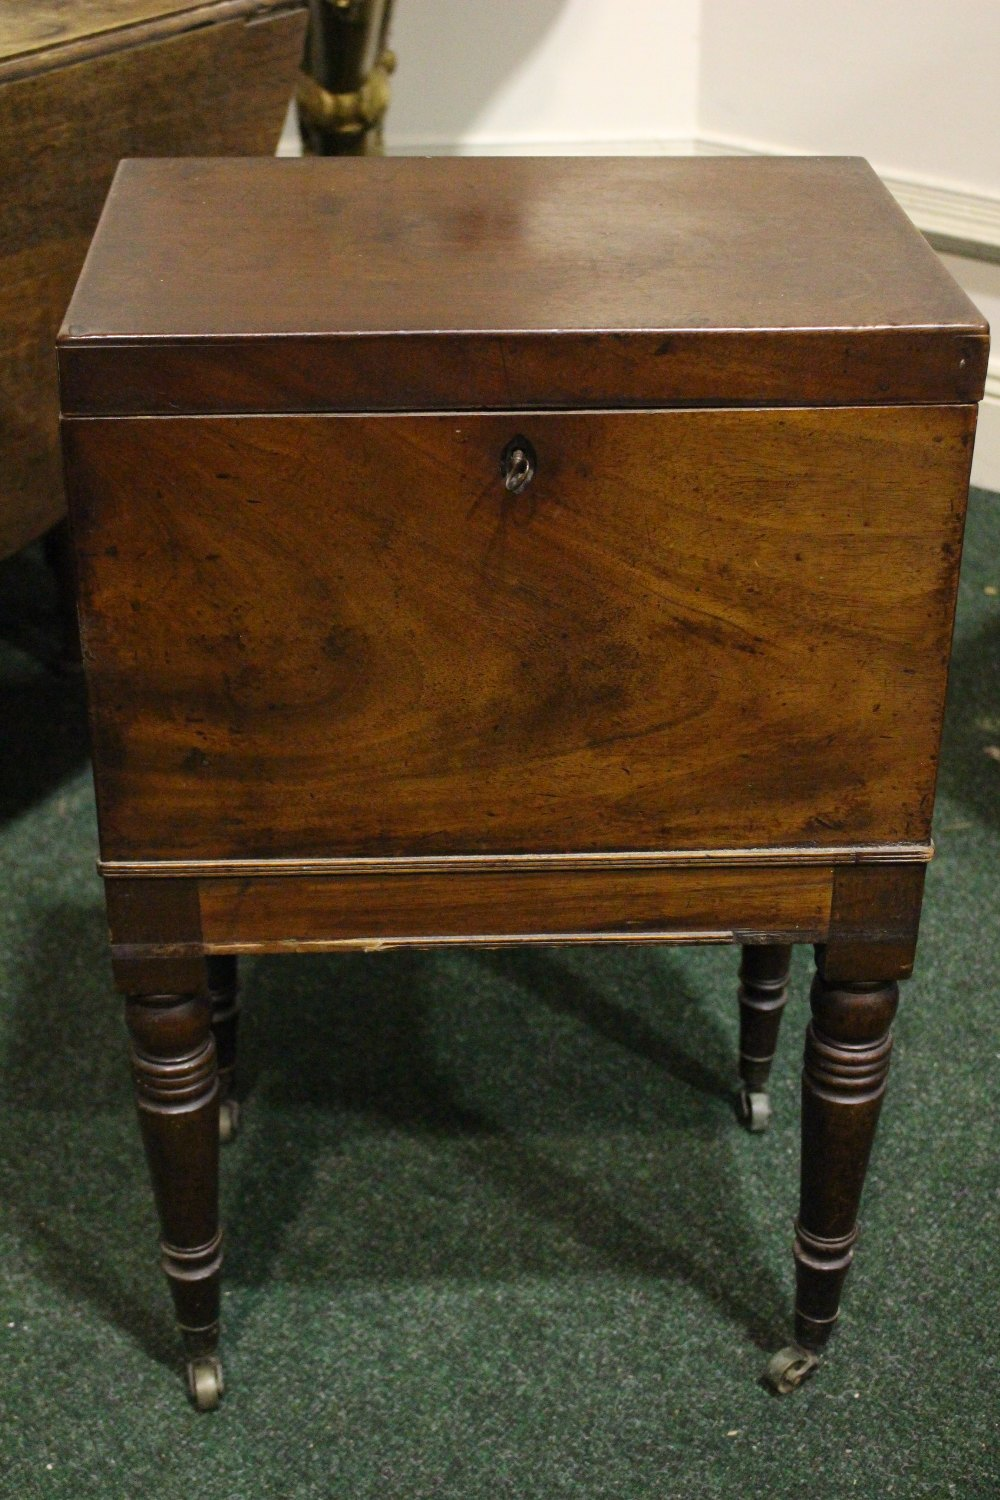 Lot 26 - A VERY GOOD CELLARET / CADDY STAND, with hinged top, compartmented interior, with a pierced lift out